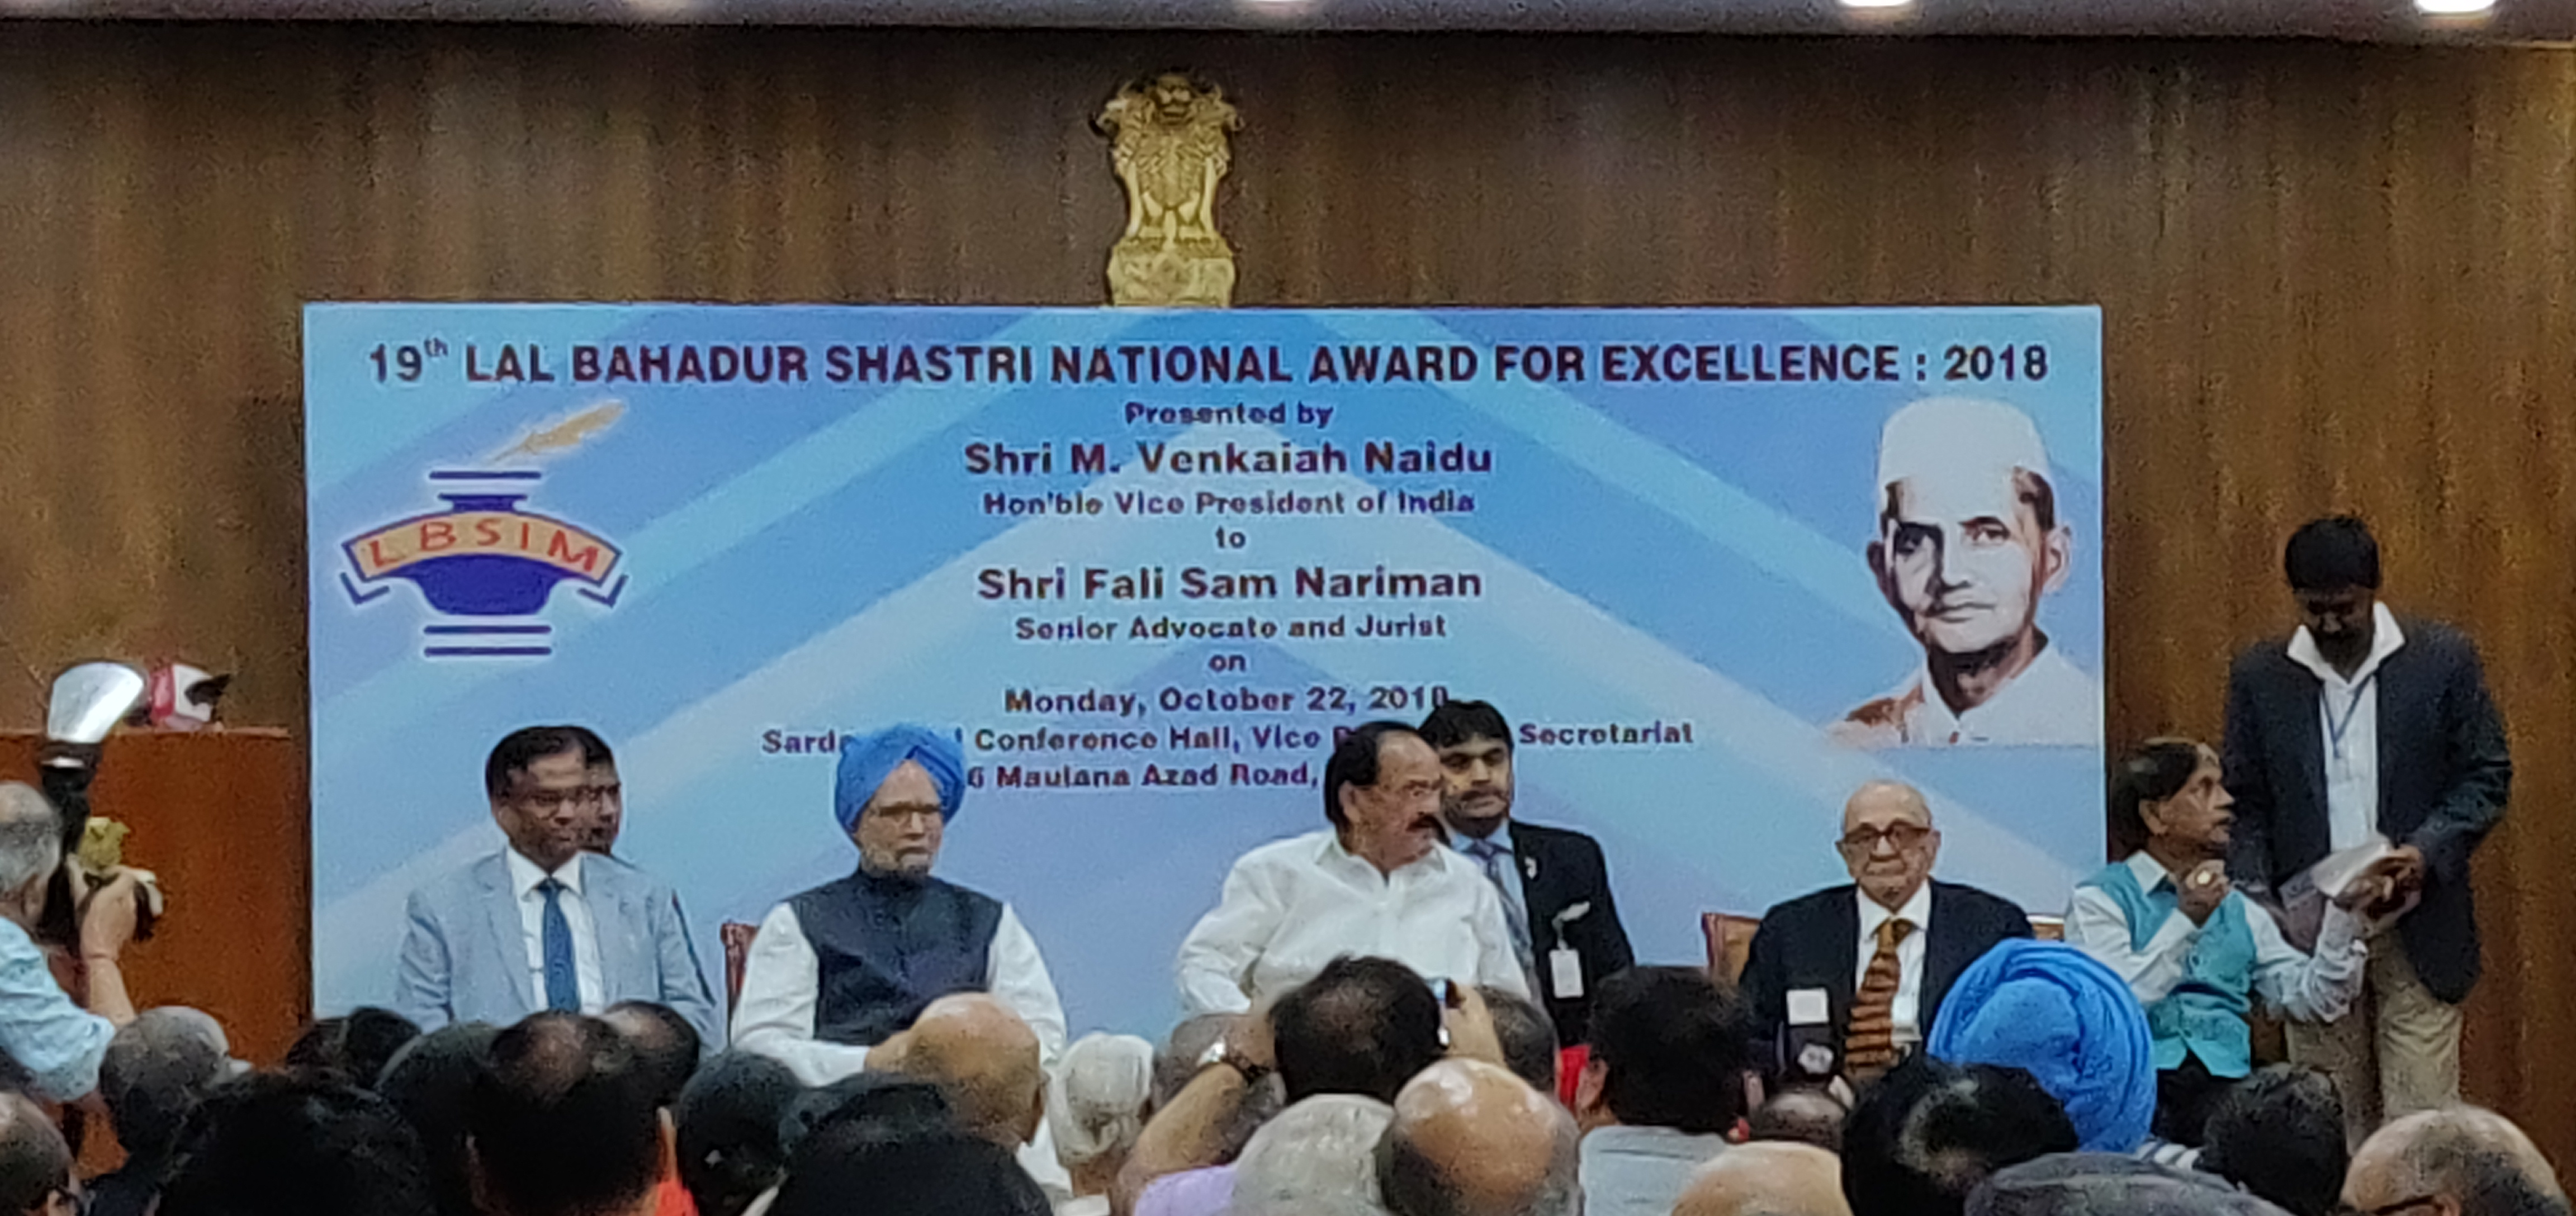 19th Lal Bahadur Shastri National Award for Excellence